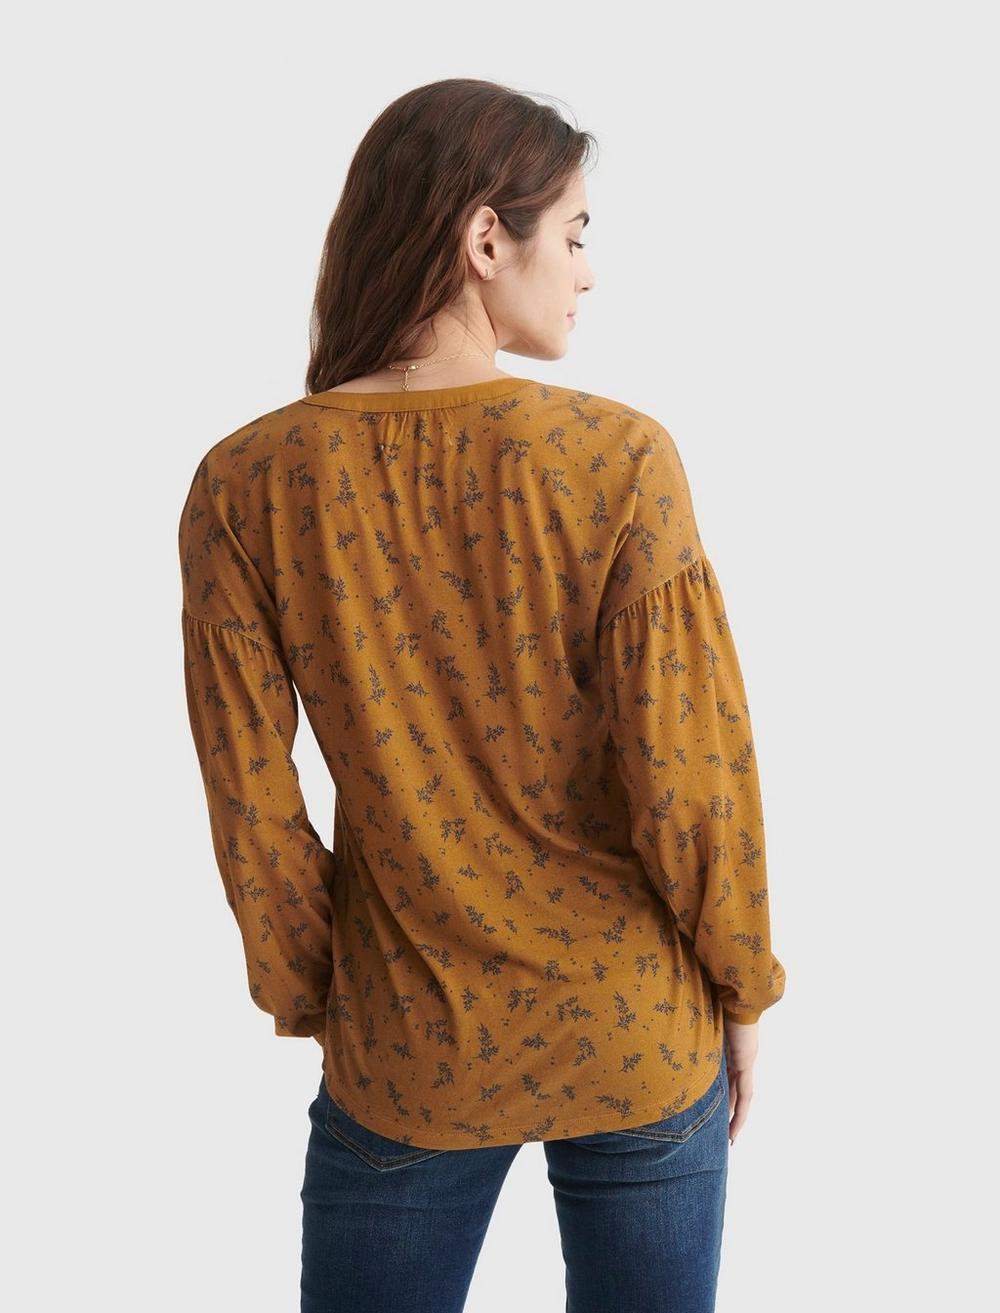 BUTTON-ACCENTED V-NECK TOP, image 5